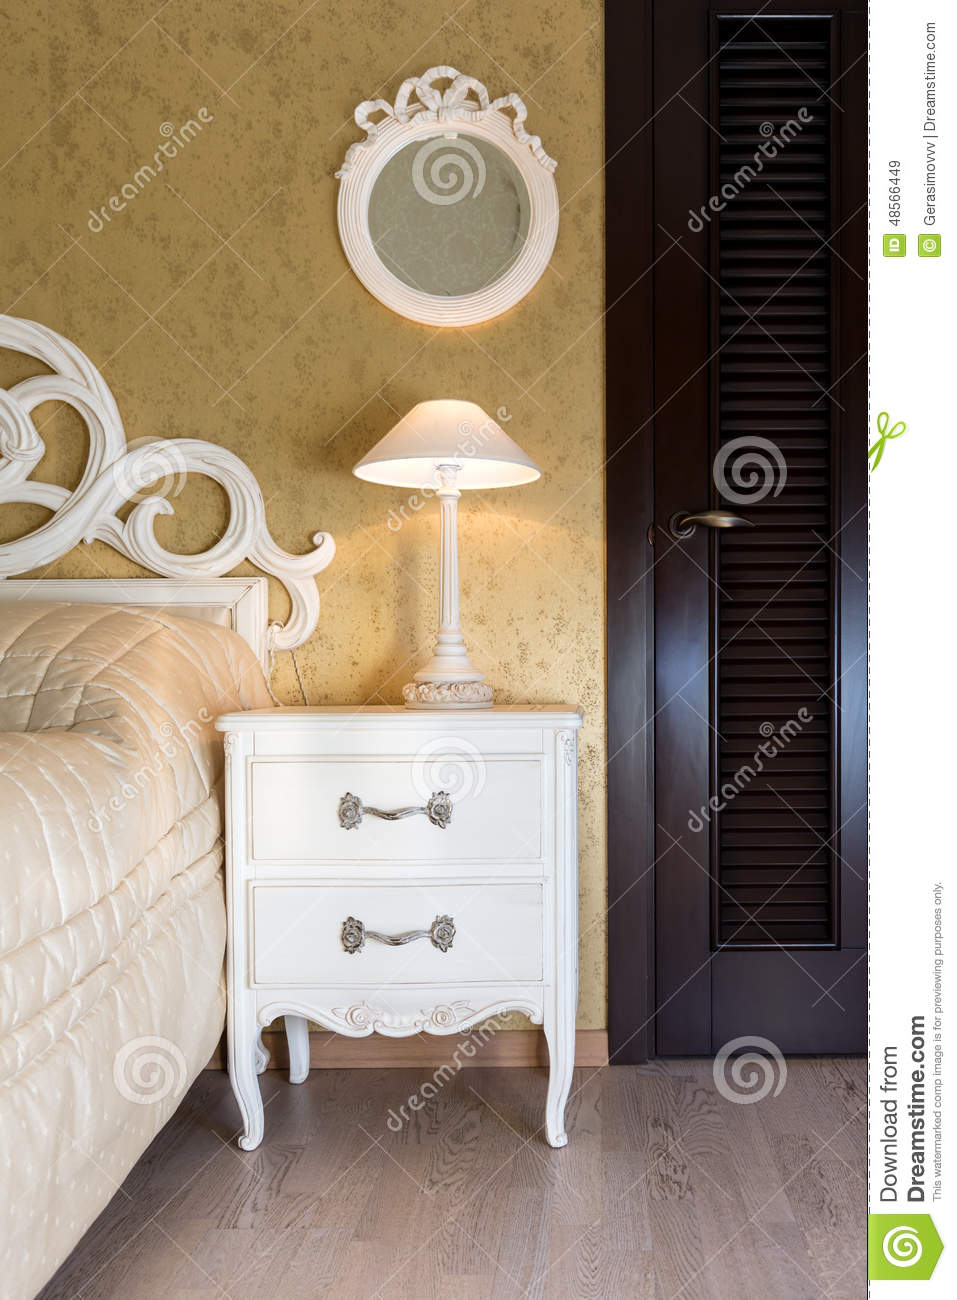 312 White Vintage Style Nightstand Photos Free Royalty Free Stock Photos From Dreamstime